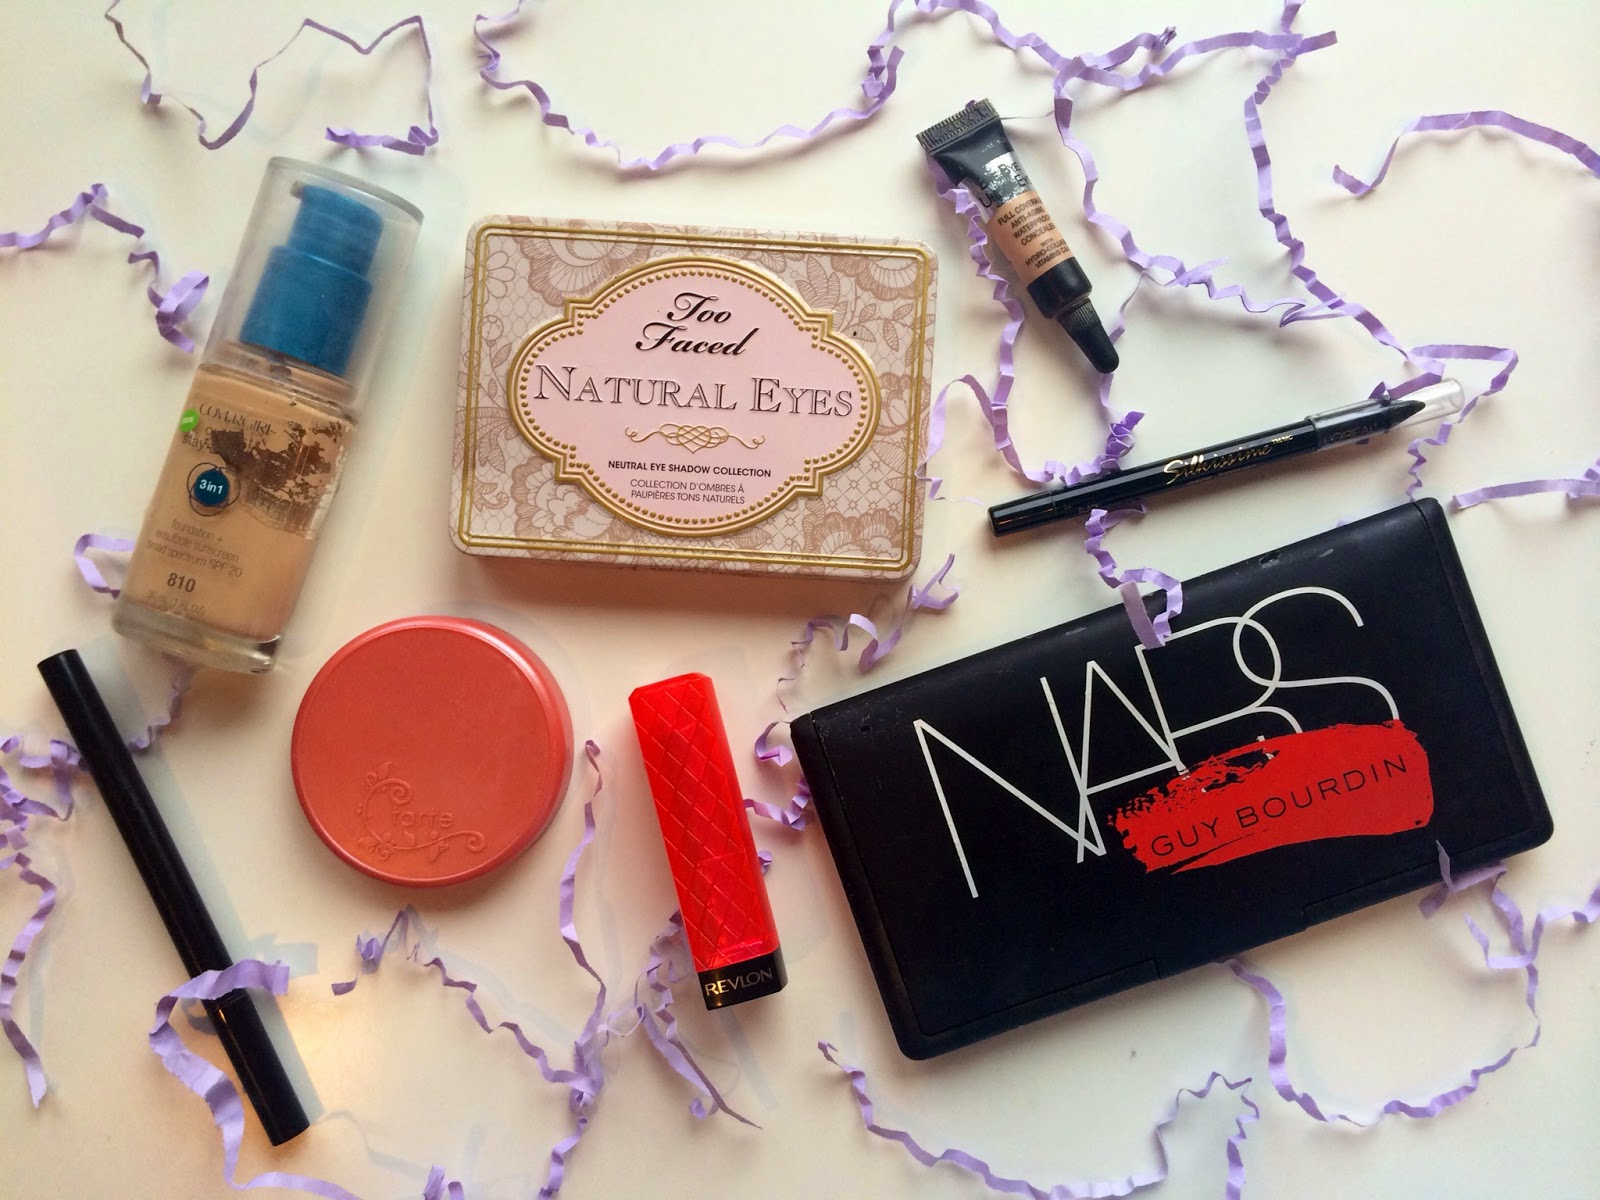 2014 favorite beauty products: Nars blush palette, tarte blush, revlon lip butters, stila liquid eyeliner